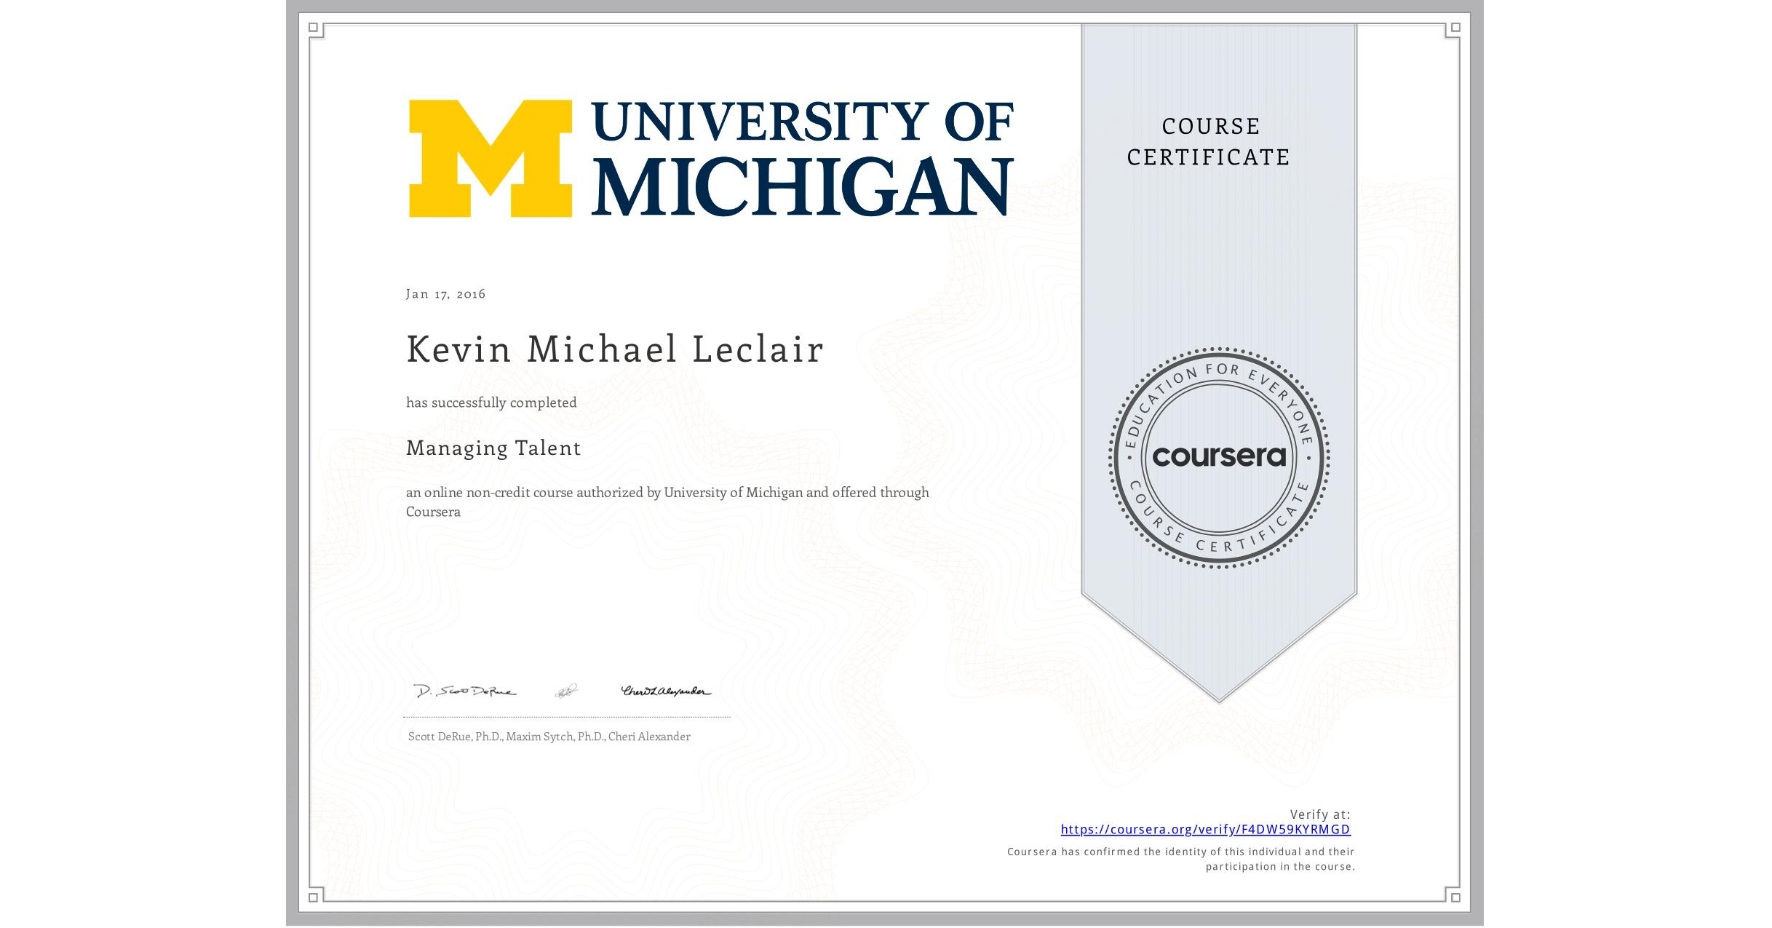 View certificate for Kevin Michael Leclair, Managing Talent, an online non-credit course authorized by University of Michigan and offered through Coursera